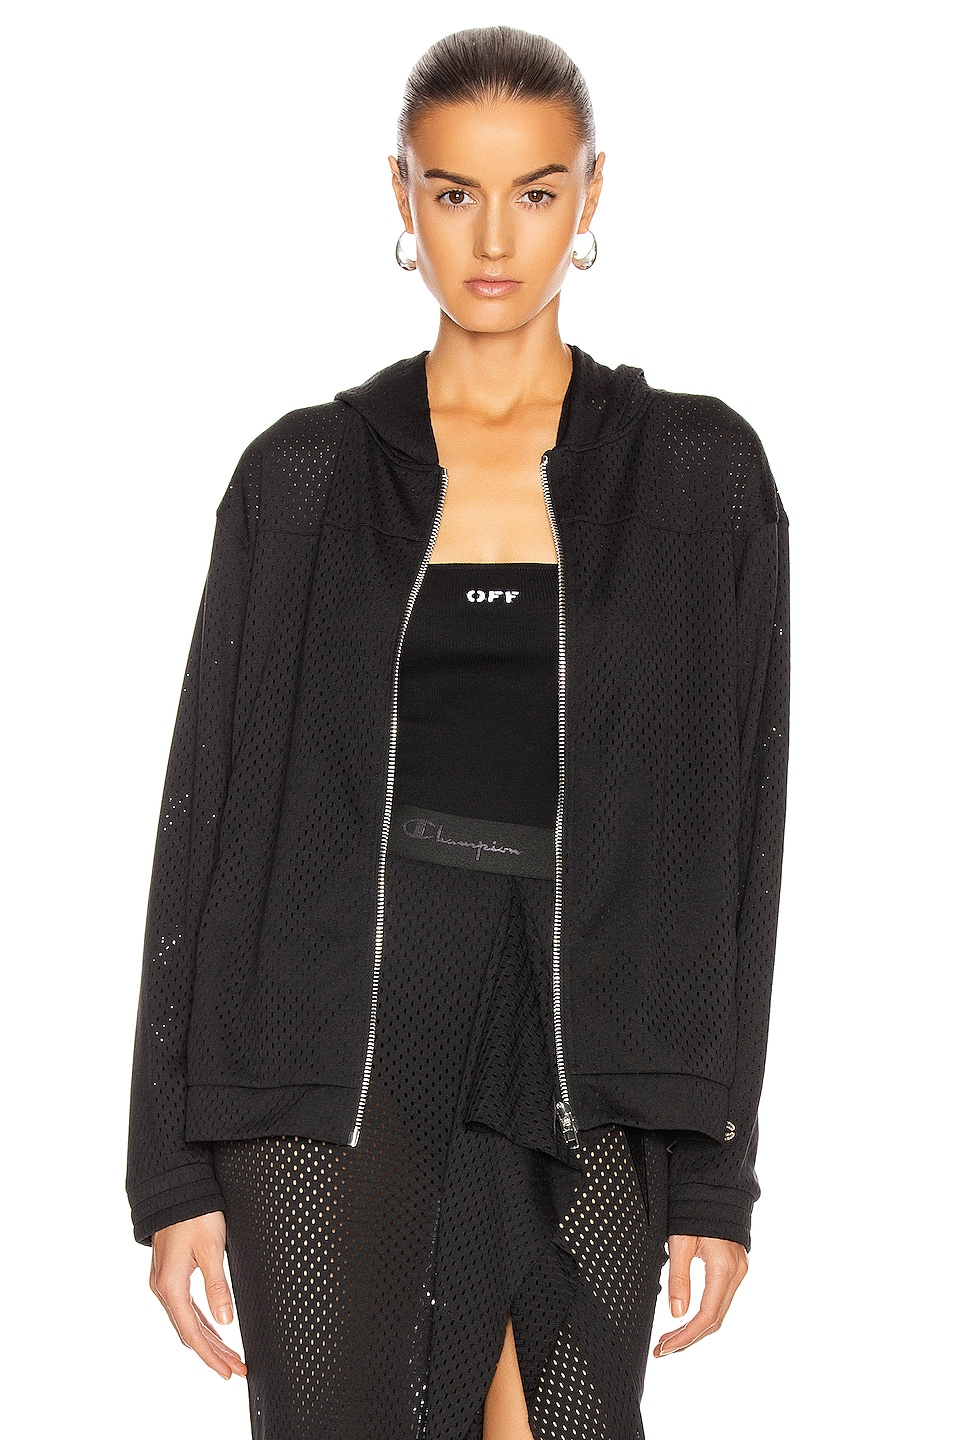 Image 1 of Rick Owens x Champion Mesh Hooded Windbreaker Jacket in Black